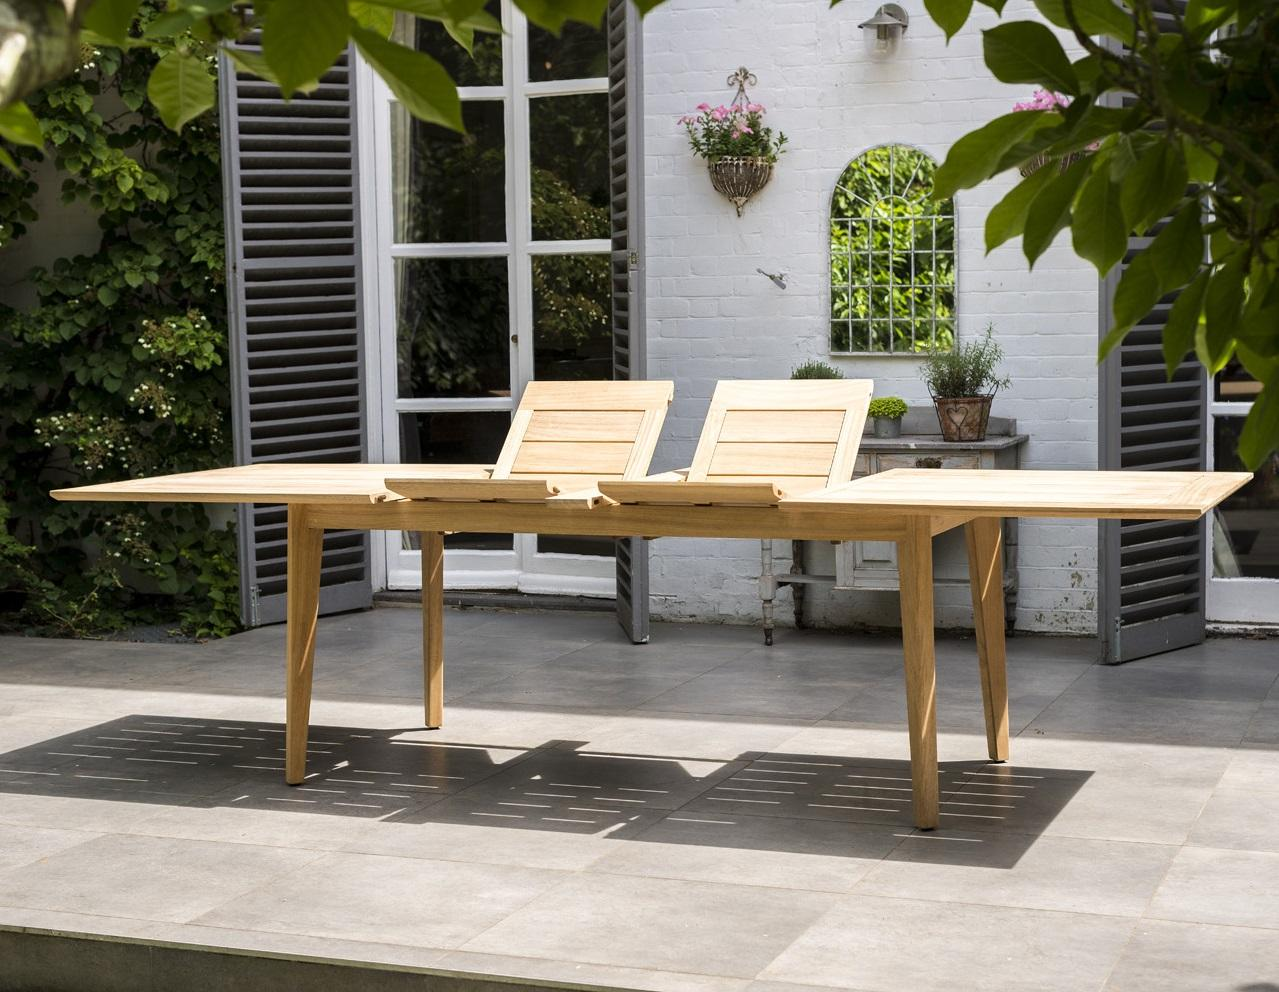 wooden_garden_dining_extending_table_furniture_patio_table_chairs_roble_hardwood_kent_uk